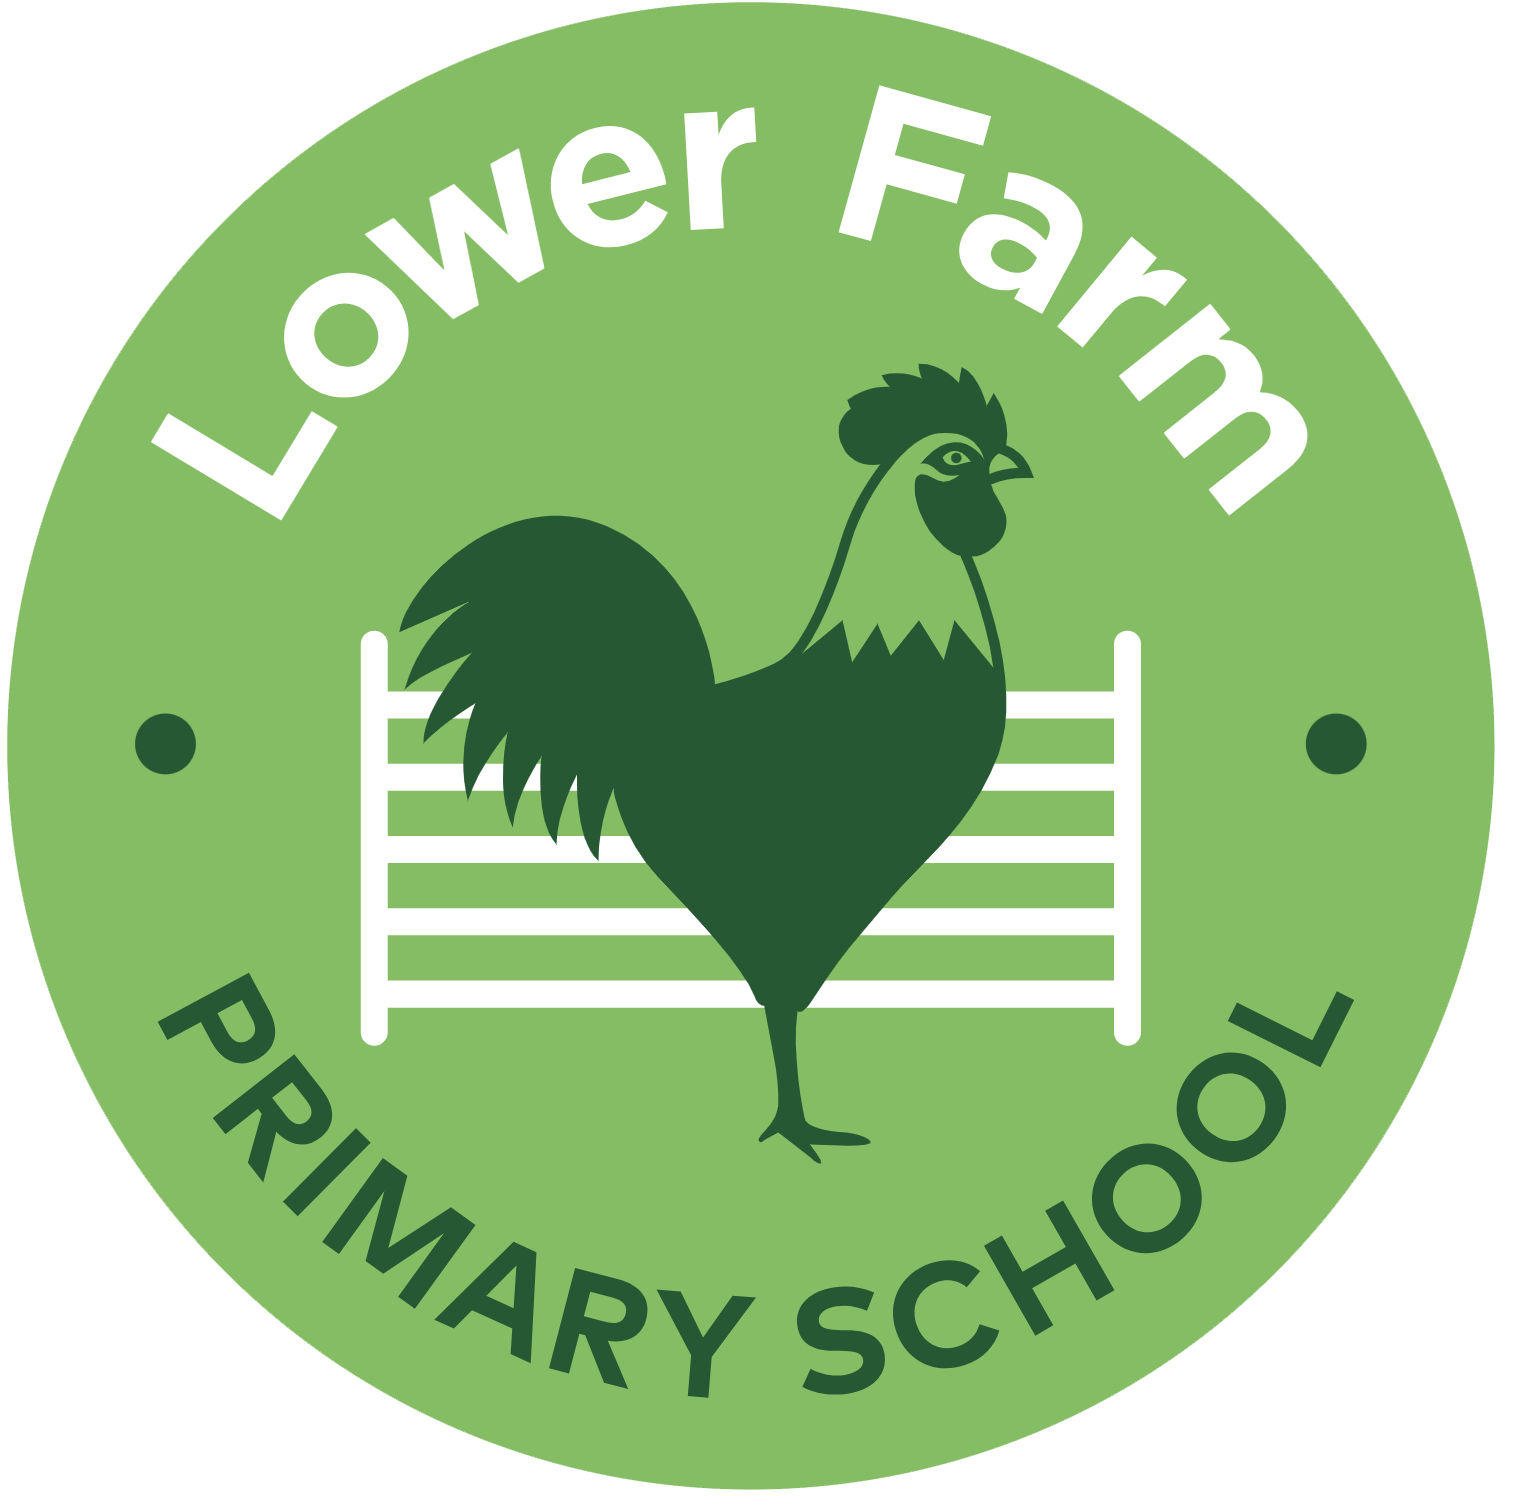 LowerFarm